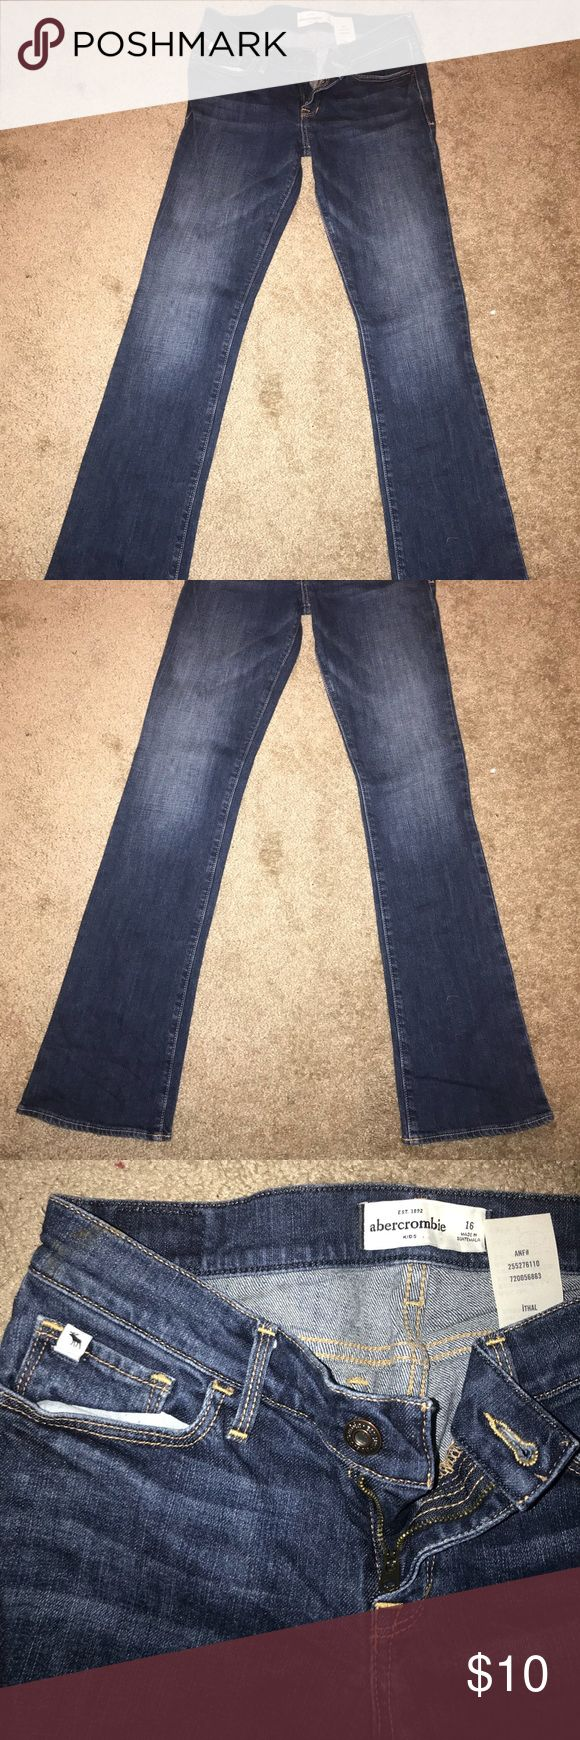 KIDS ABERCROMBIE JEANS SIZE 16 Girls Abercrombie jeans size 16 beautiful condition no stains or holes. Abercombie Kids Bottoms Jeans